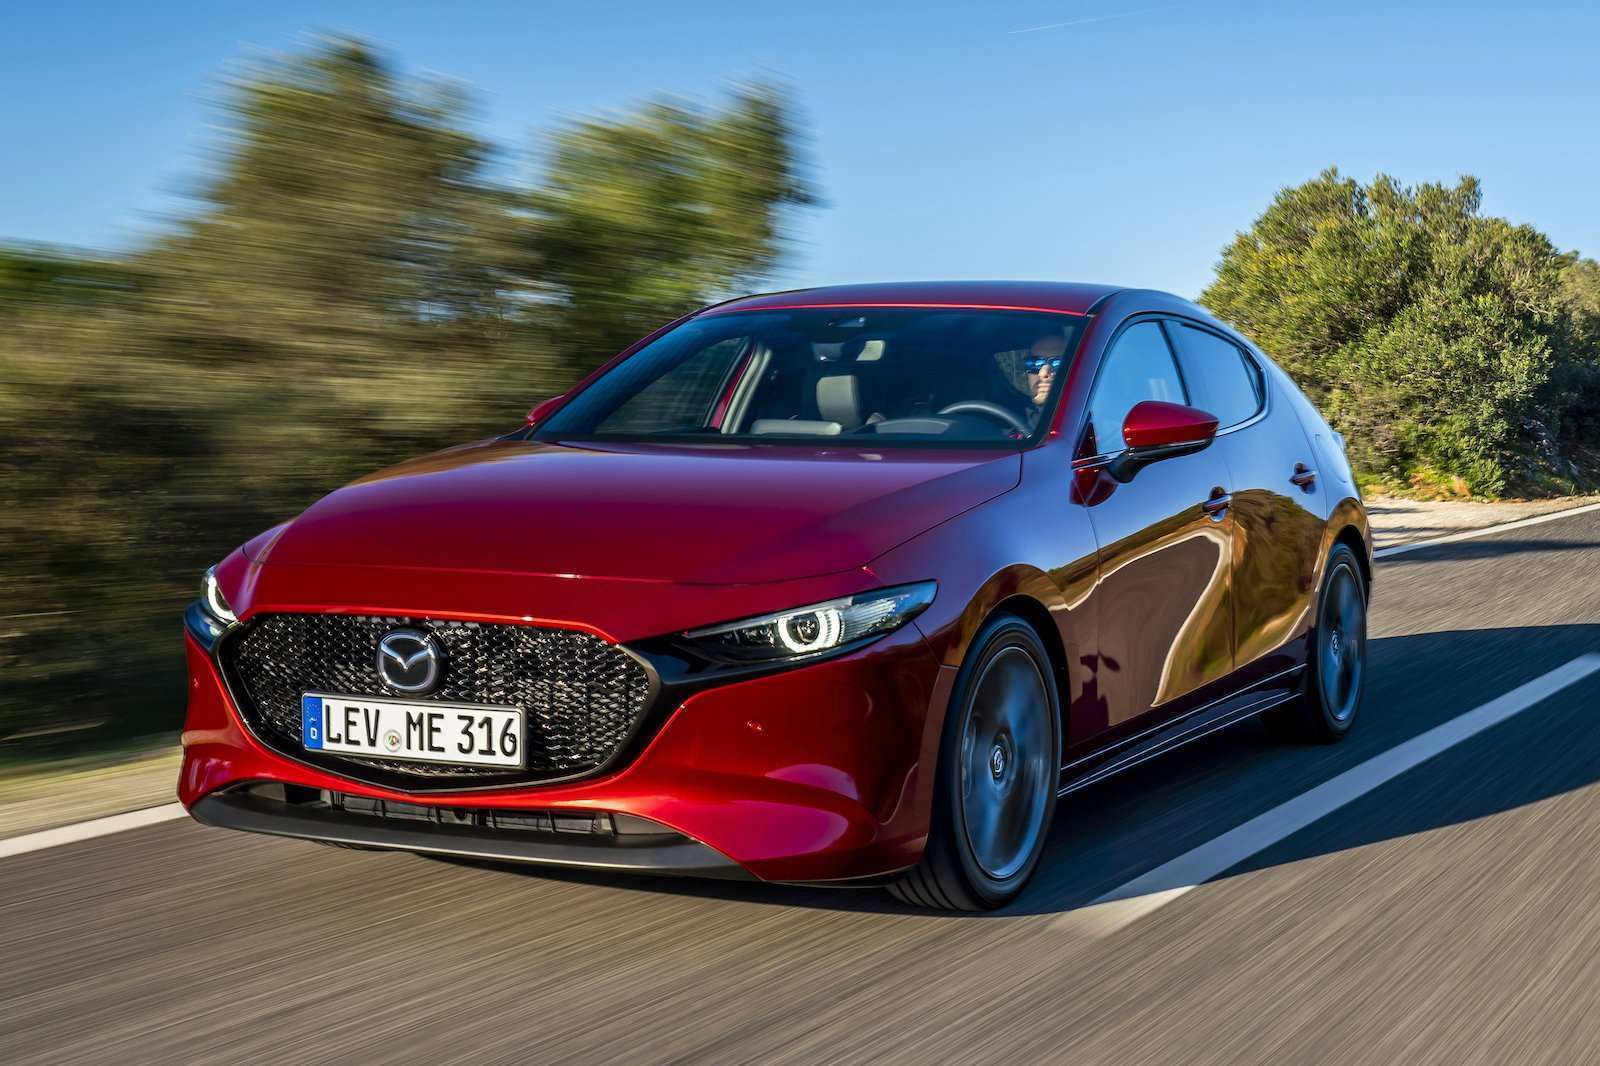 86 Great Mazdas New Engine For 2019 Review Specs And Release Date Engine by Mazdas New Engine For 2019 Review Specs And Release Date